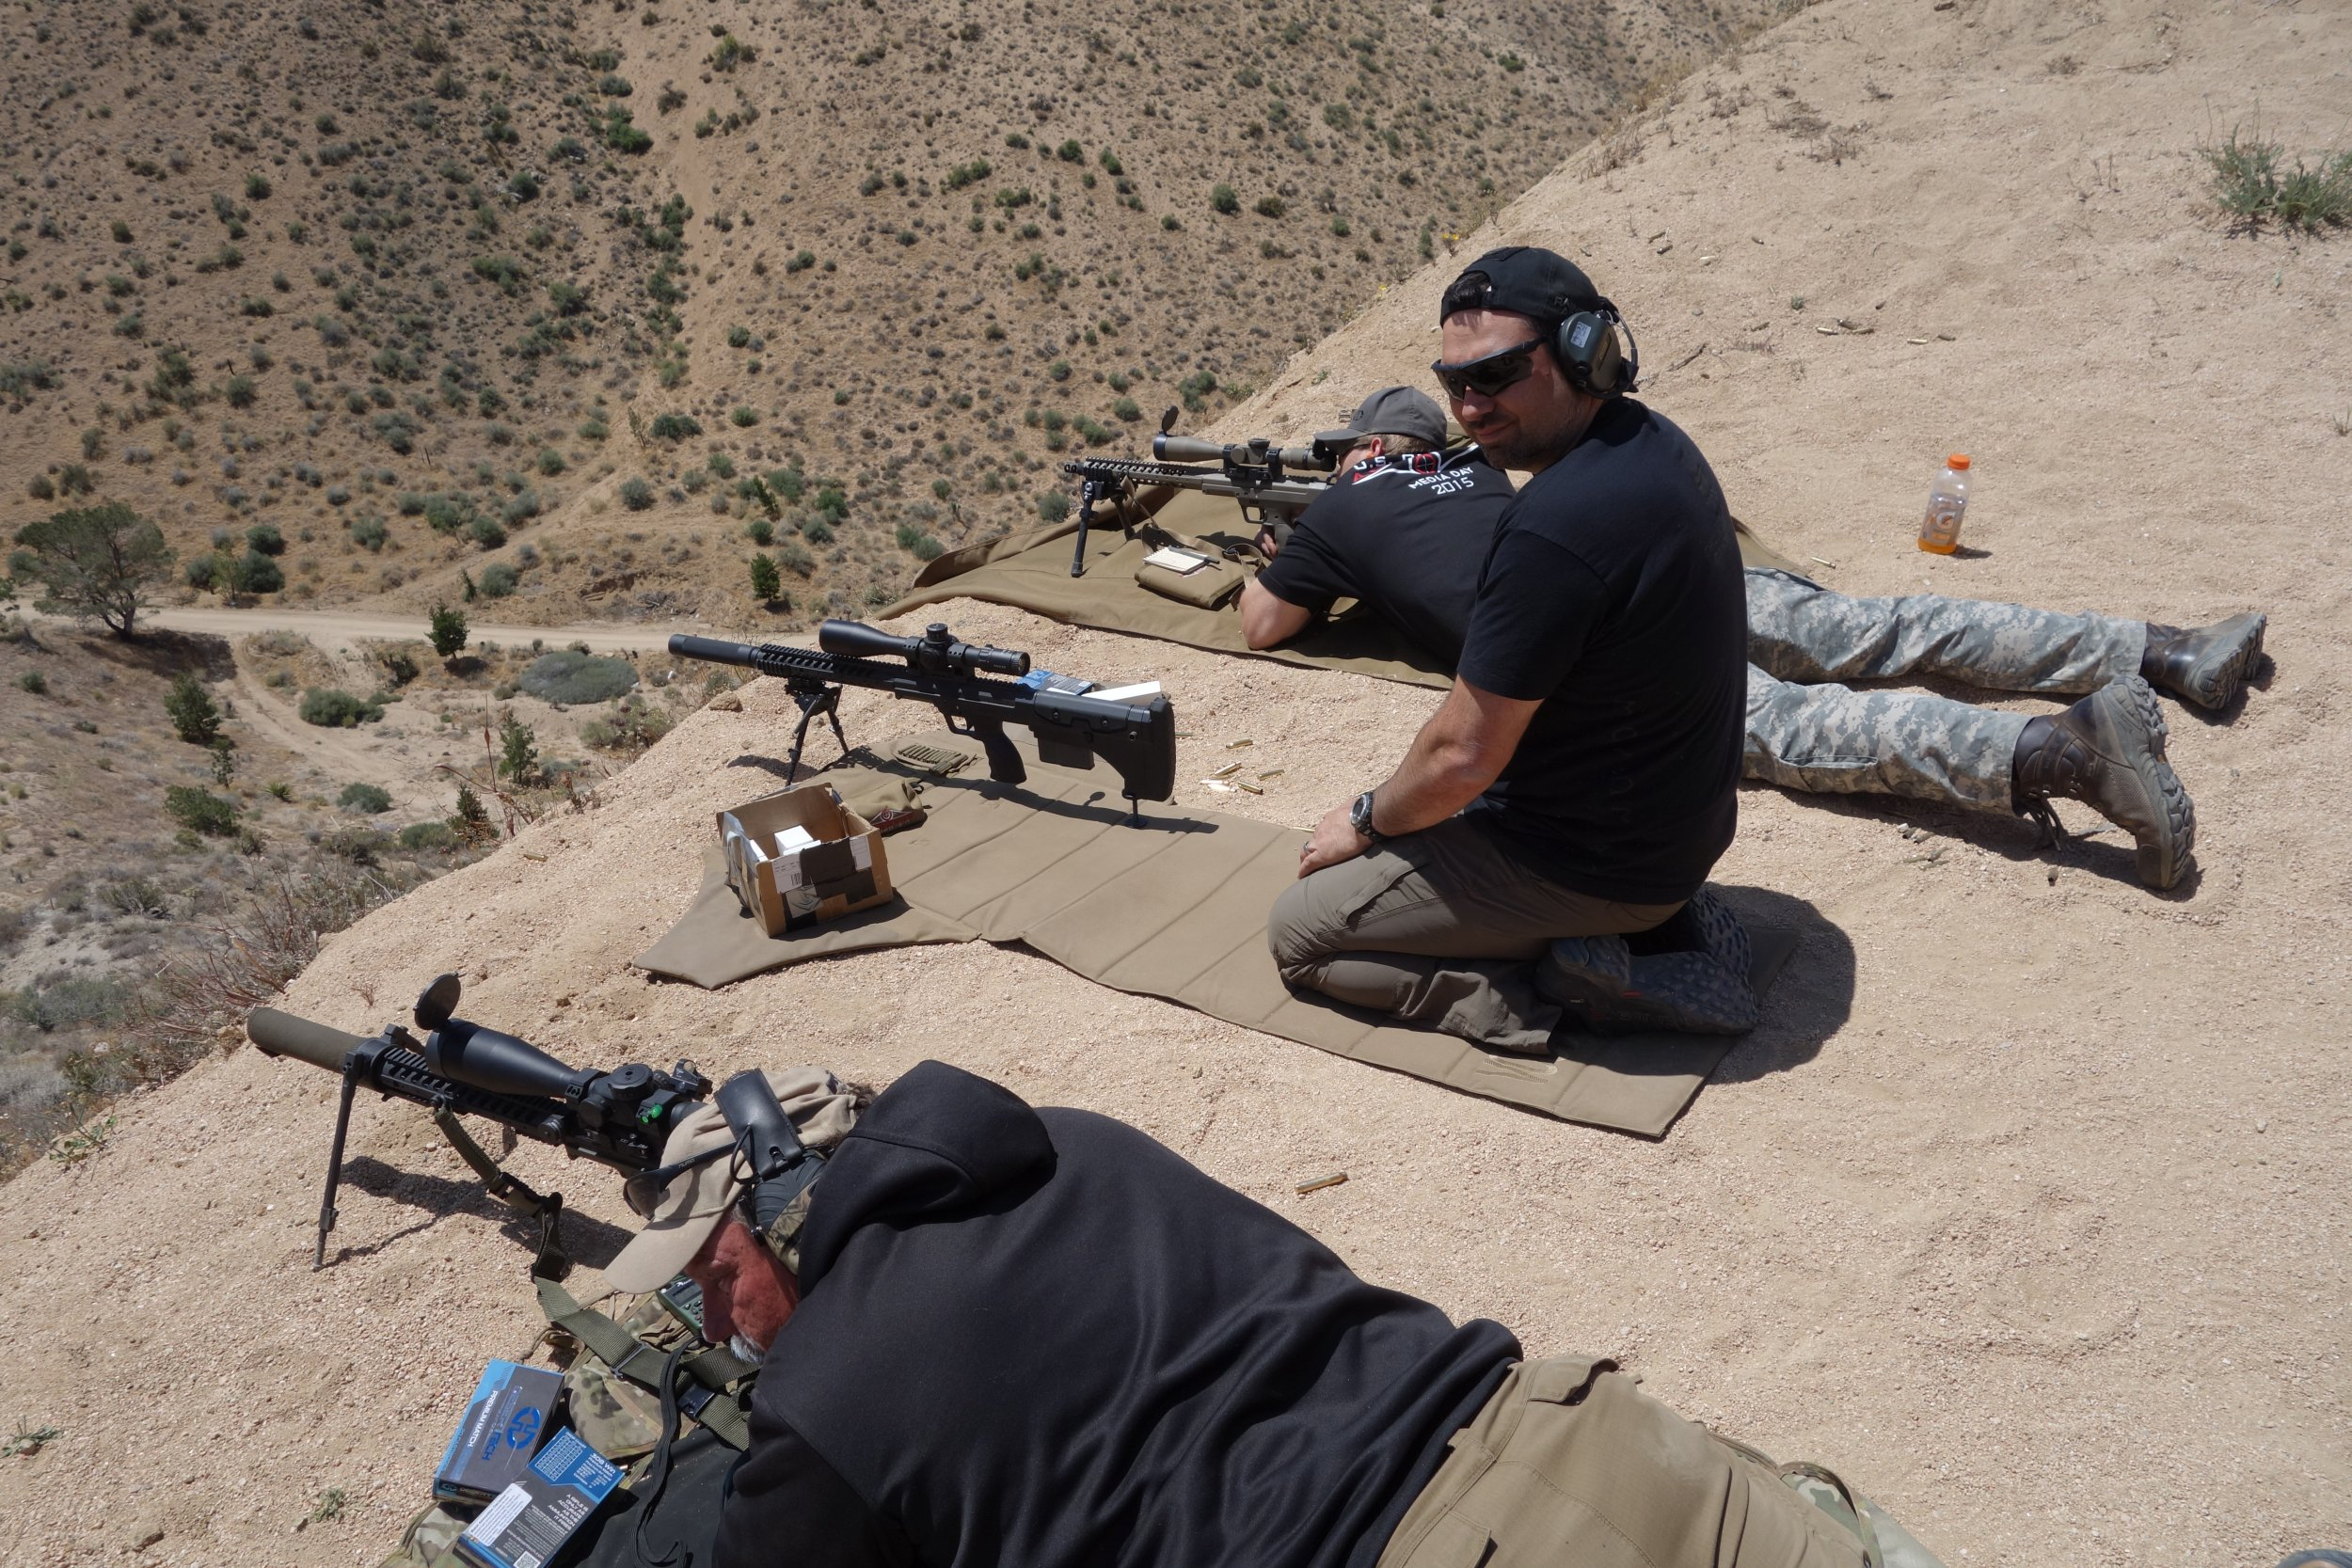 Gun review desert tactical arms stealth recon scout dta srs rifle - Try Watching This Video On Www Youtube Com Or Enable Javascript If It Is Disabled In Your Browser